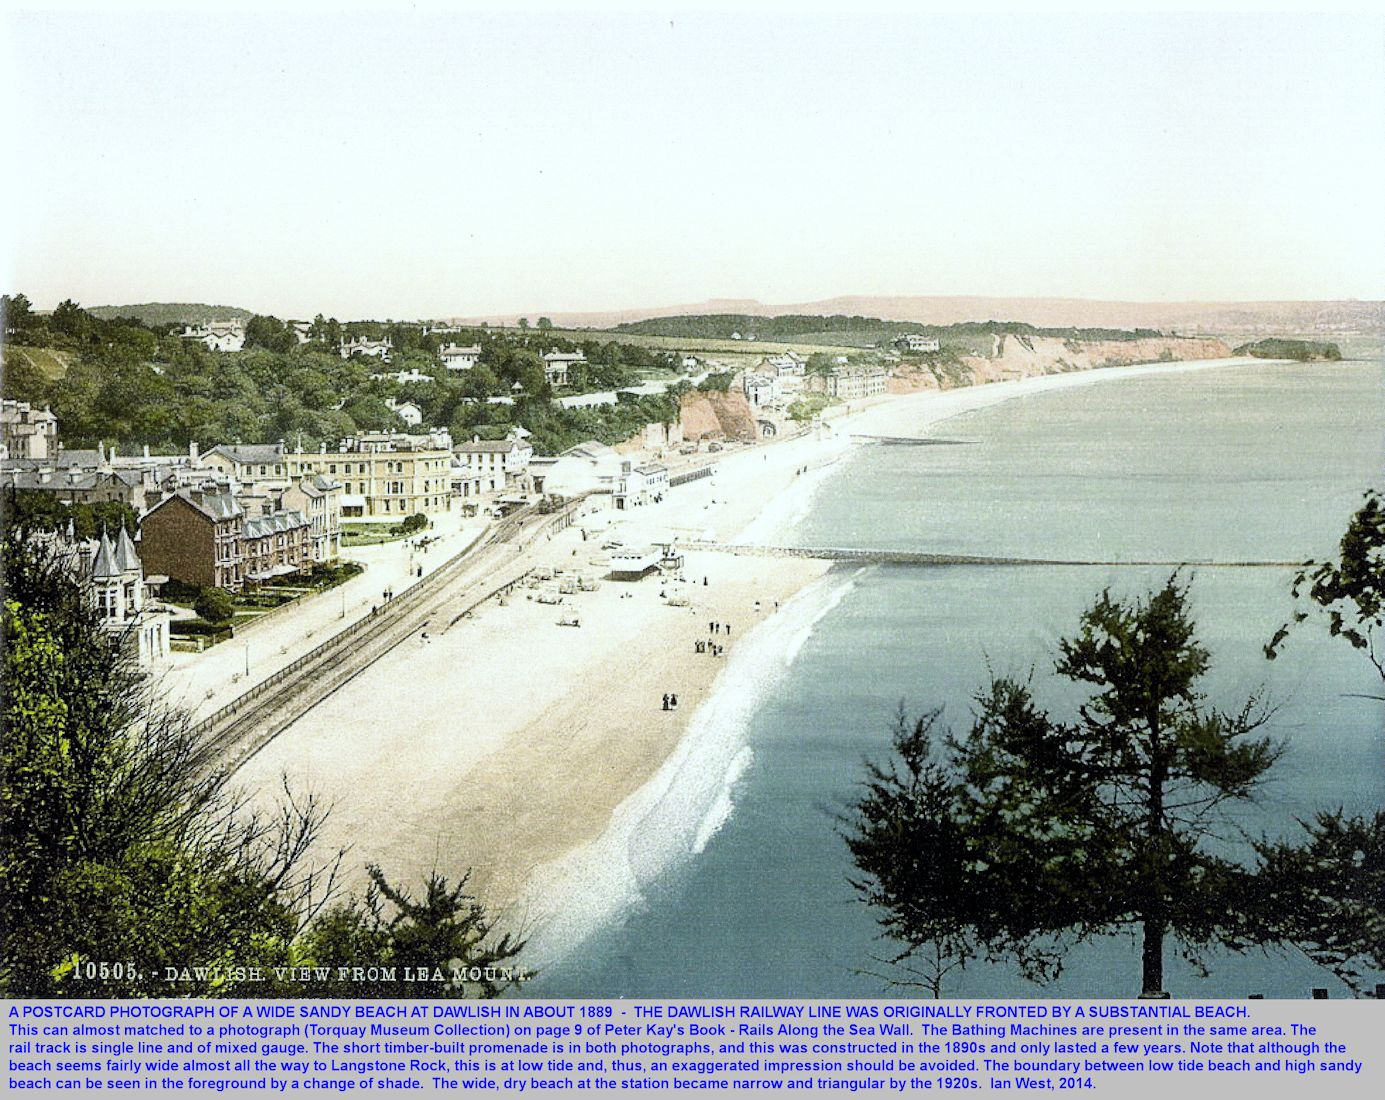 A postcard view of a relatively wid sandy beach at Dawlish, Devon in 1899